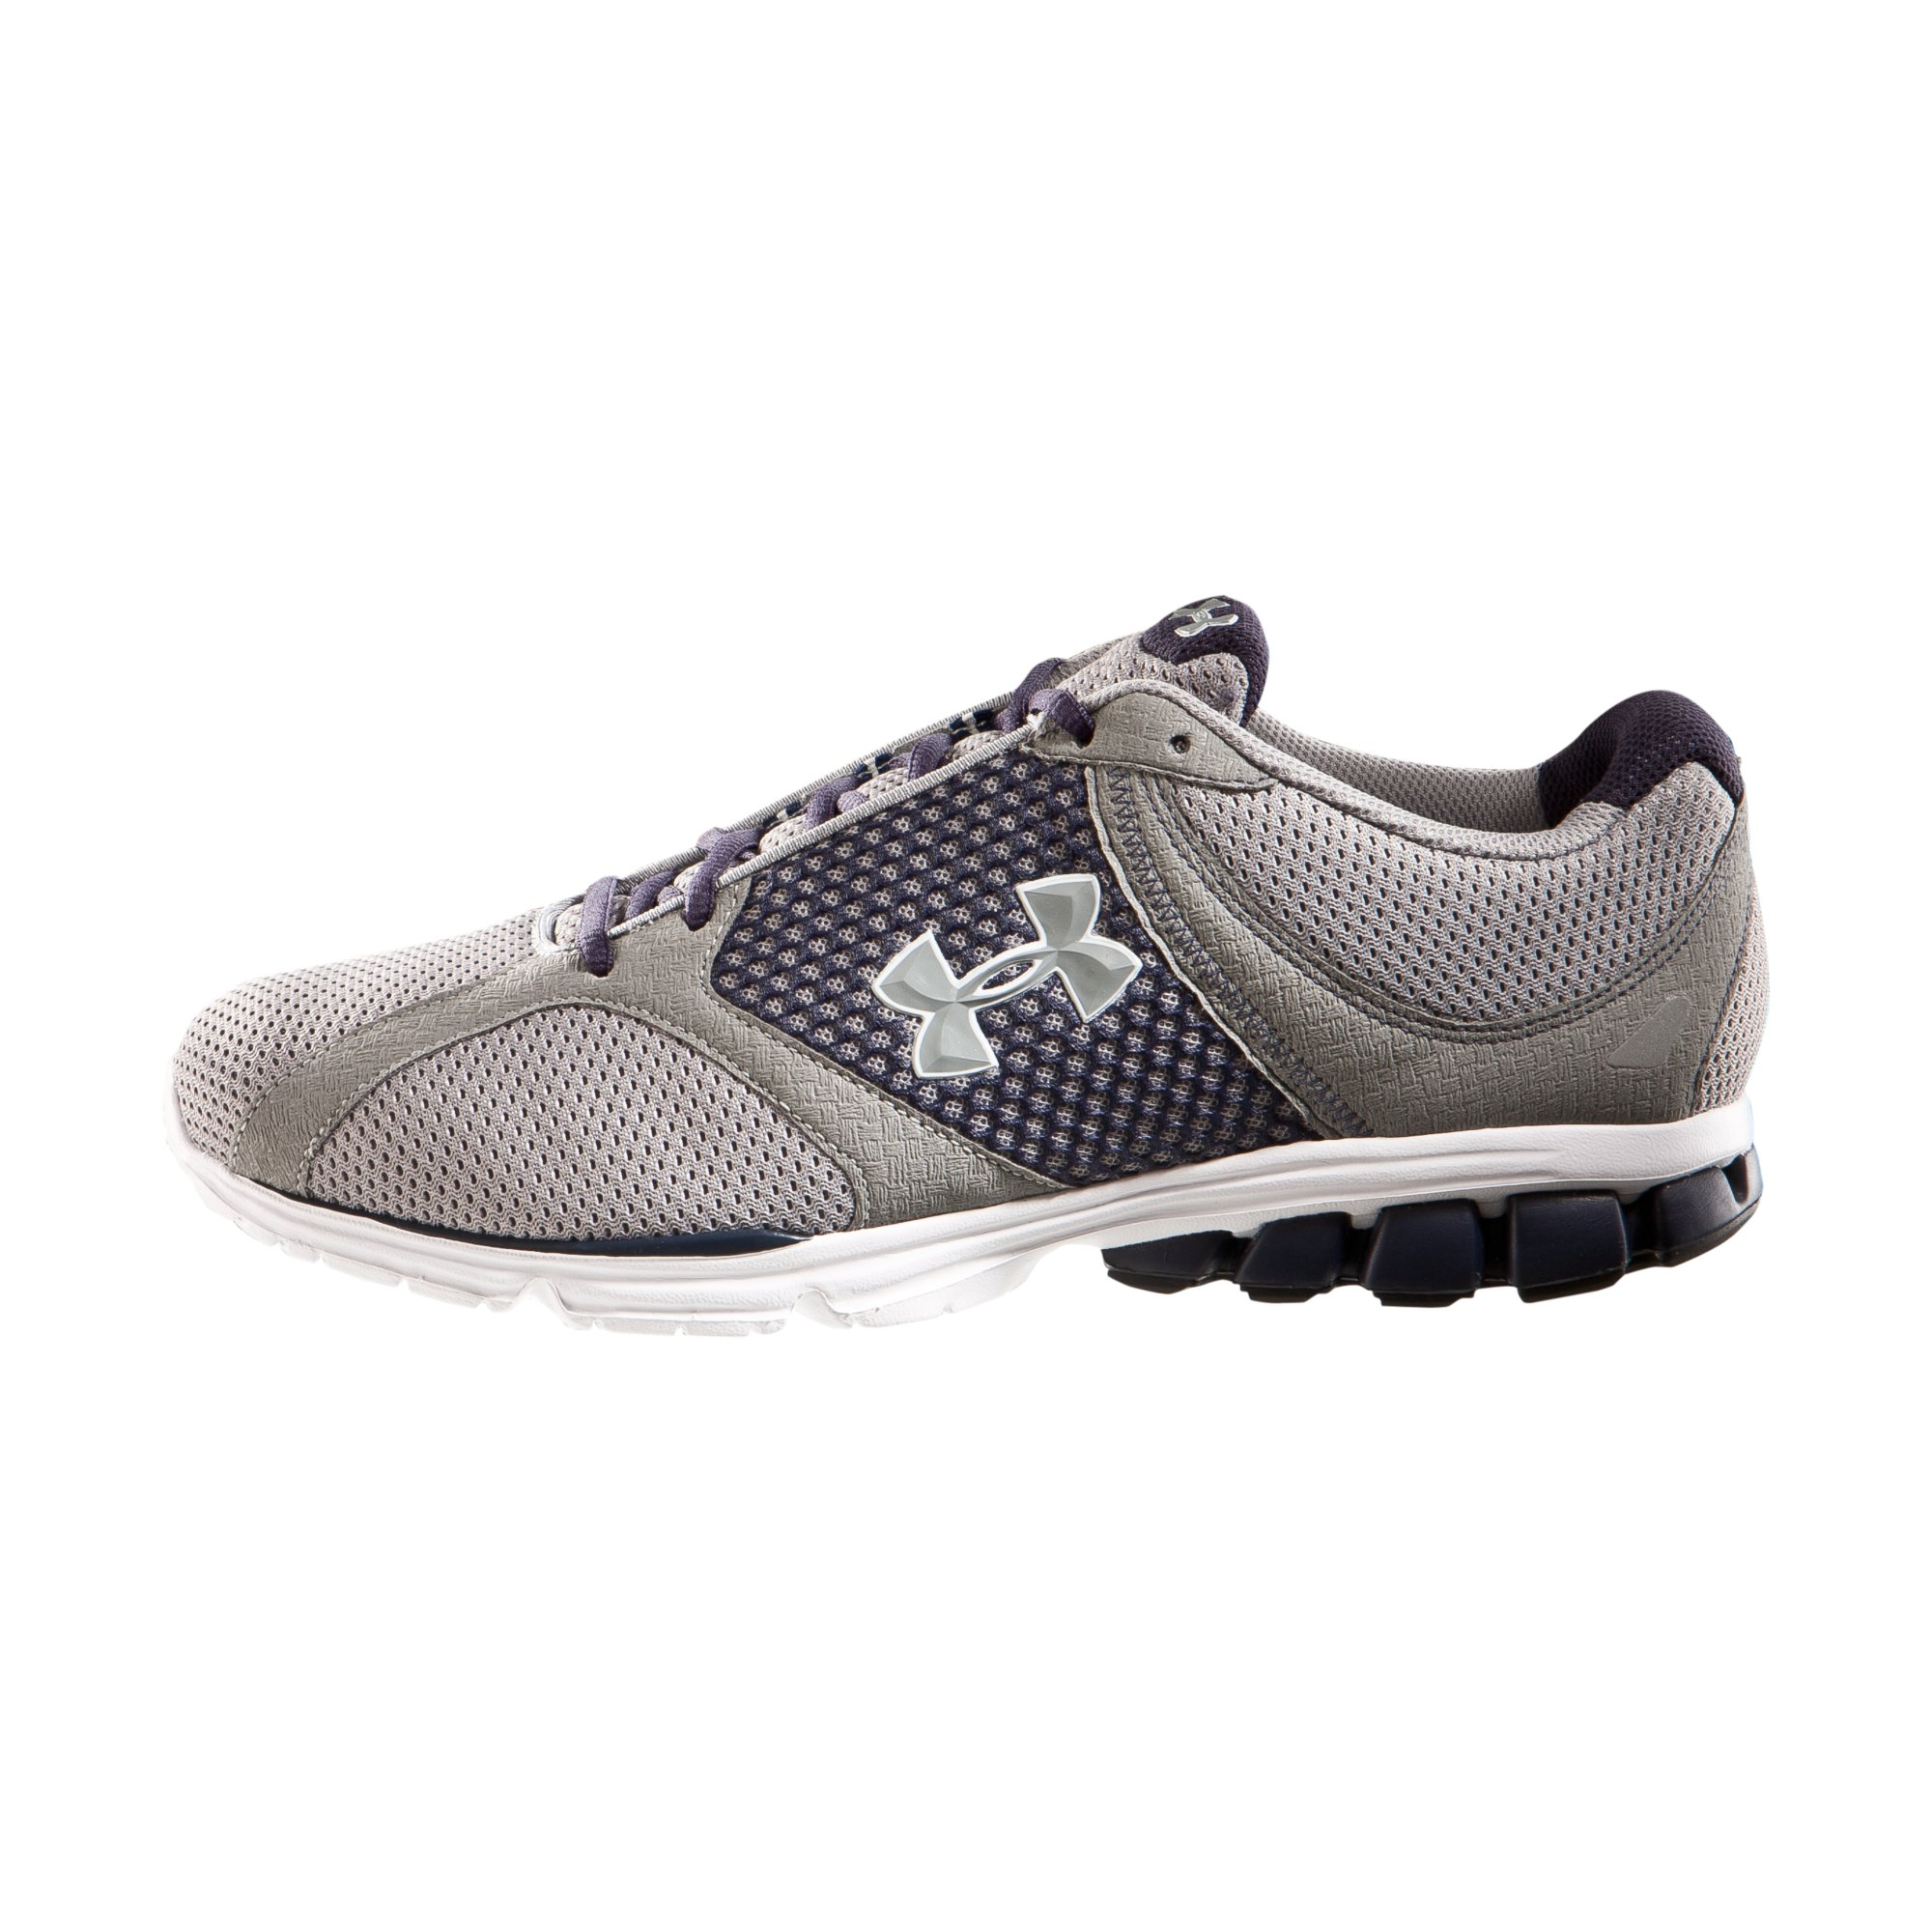 d28df2db904a2 New Balance 587 USA Running Shoes on Sale at Amazon  25% Off